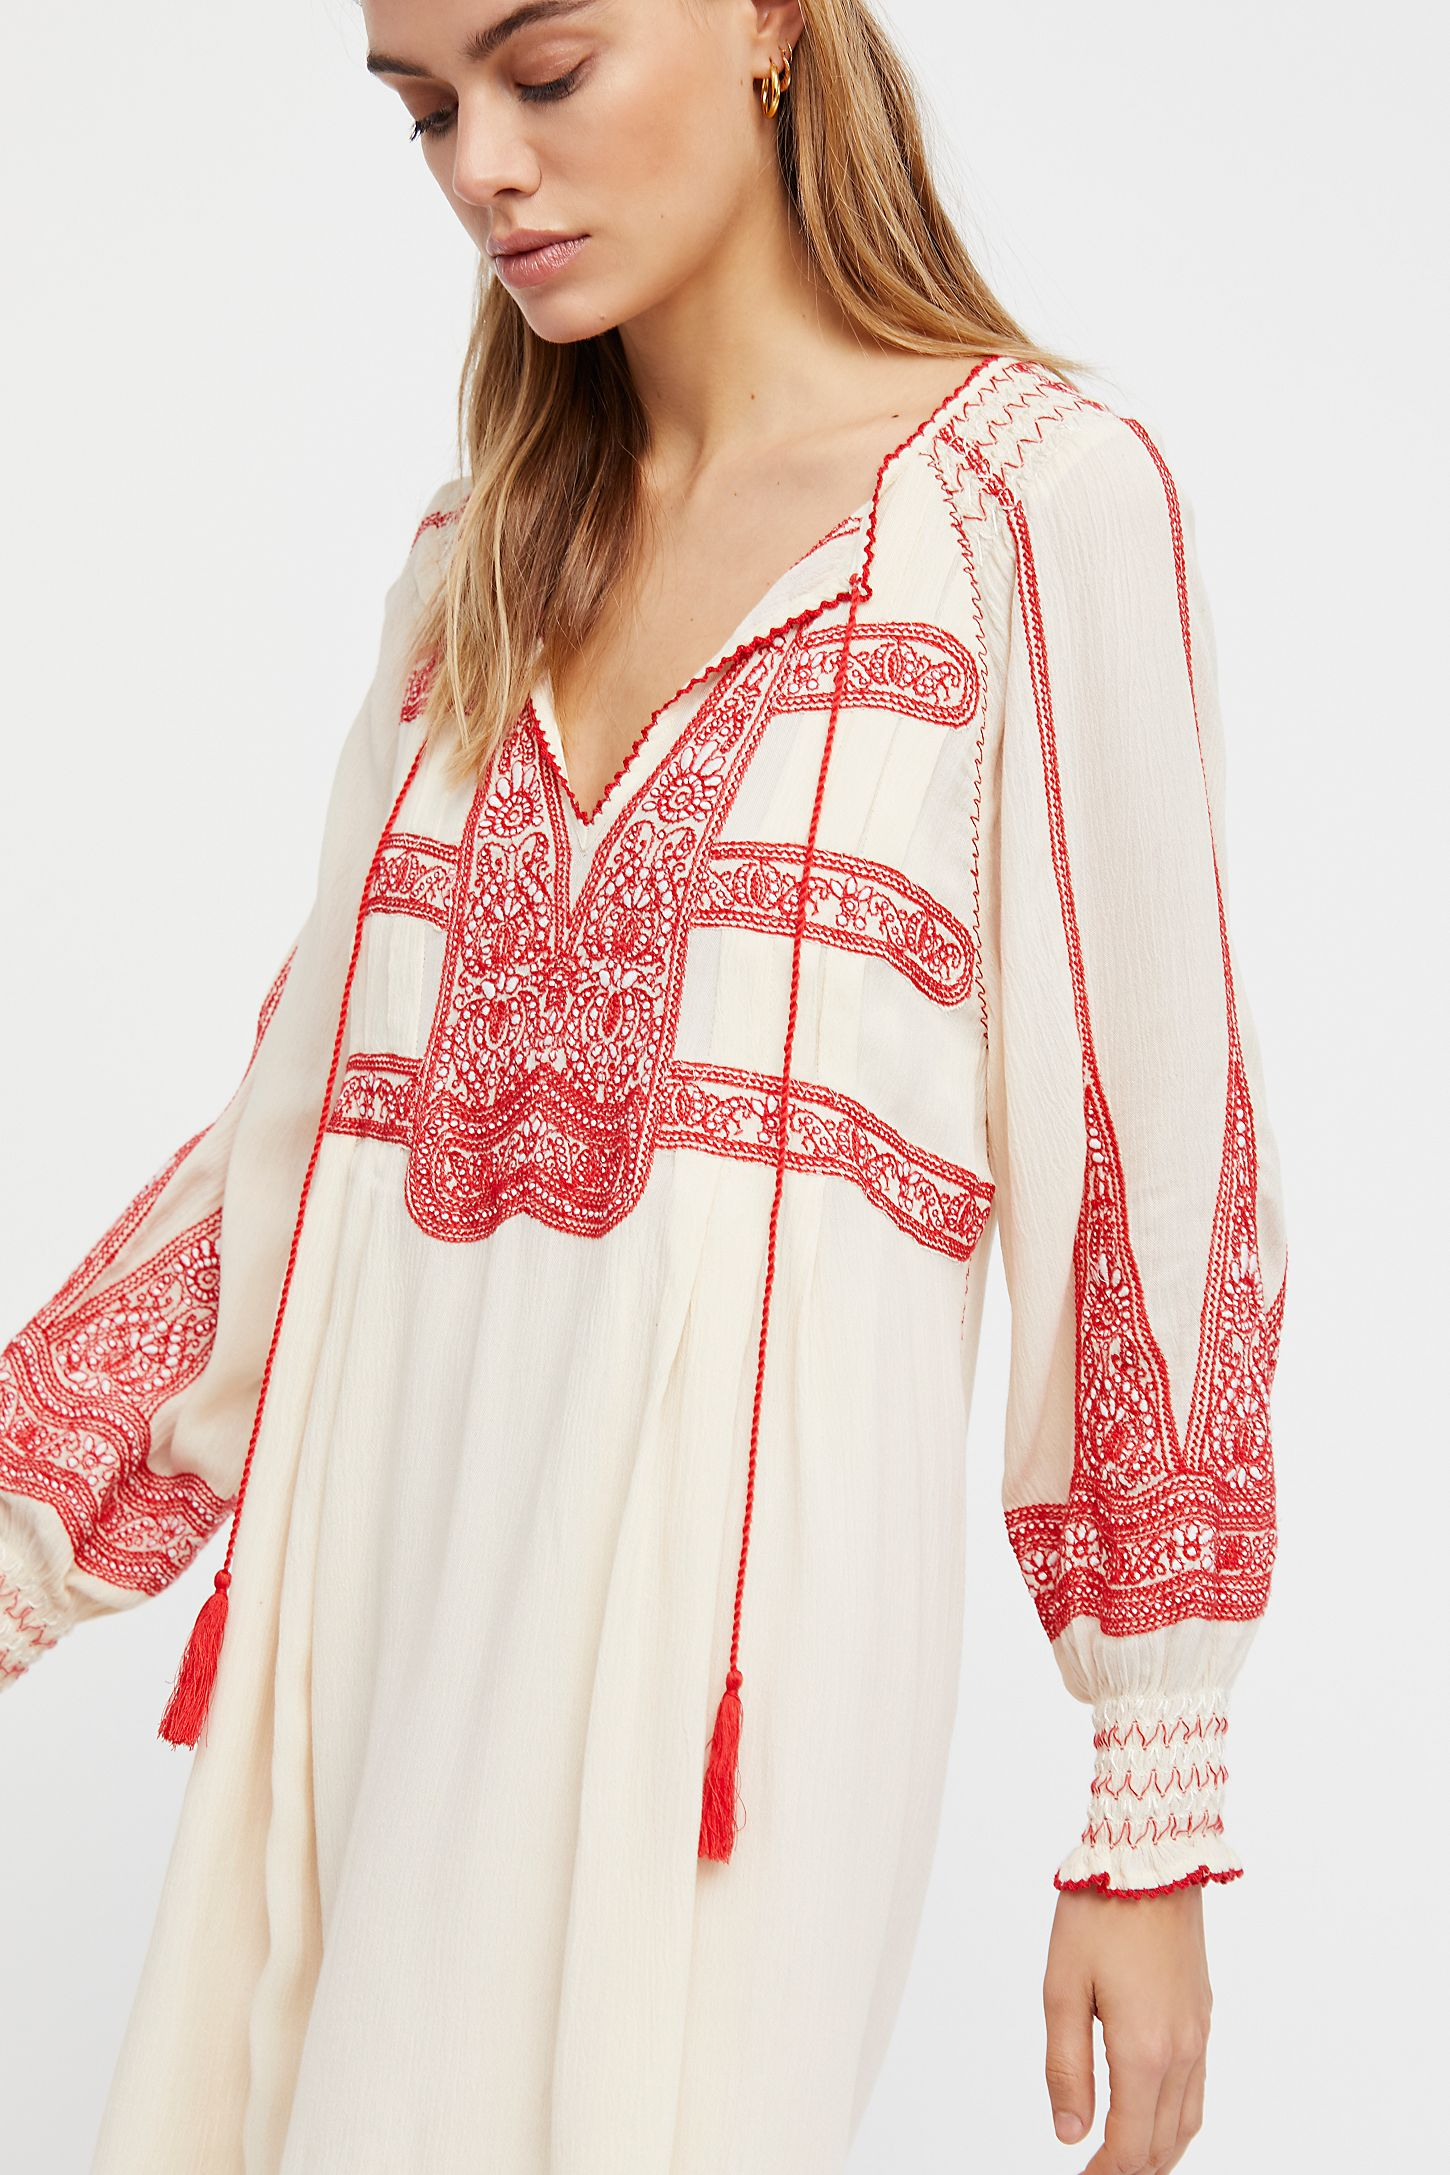 Wind Willow Embroidered Mini Dress - Ivory Free People vzZ1Jy0